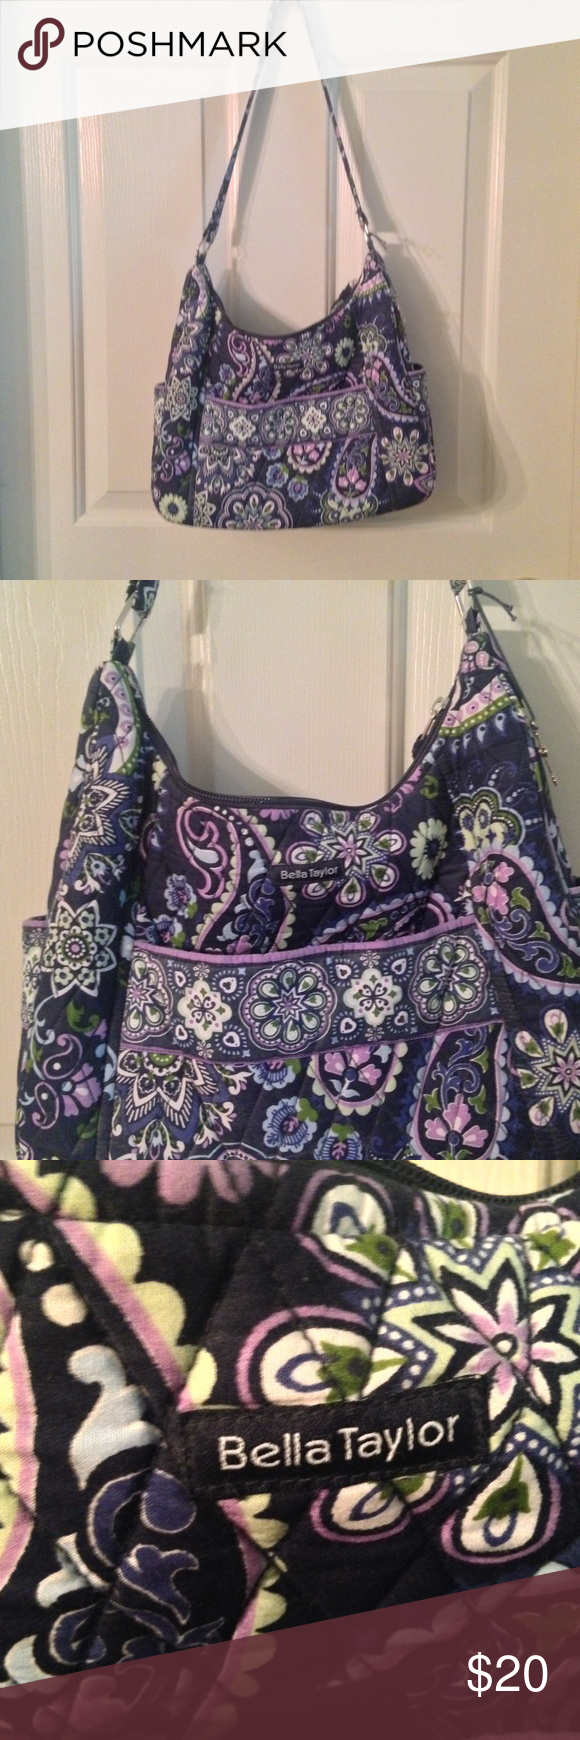 Purse Bella Taylor quilted purse navy background with pasley print in lavender, light green, light blue and white. Has front pocket that closes with Velcro tab, two side pockets and one inside zipper pocket.  👜 Non-🚬 household. bella taylor Bags Shoulder Bags